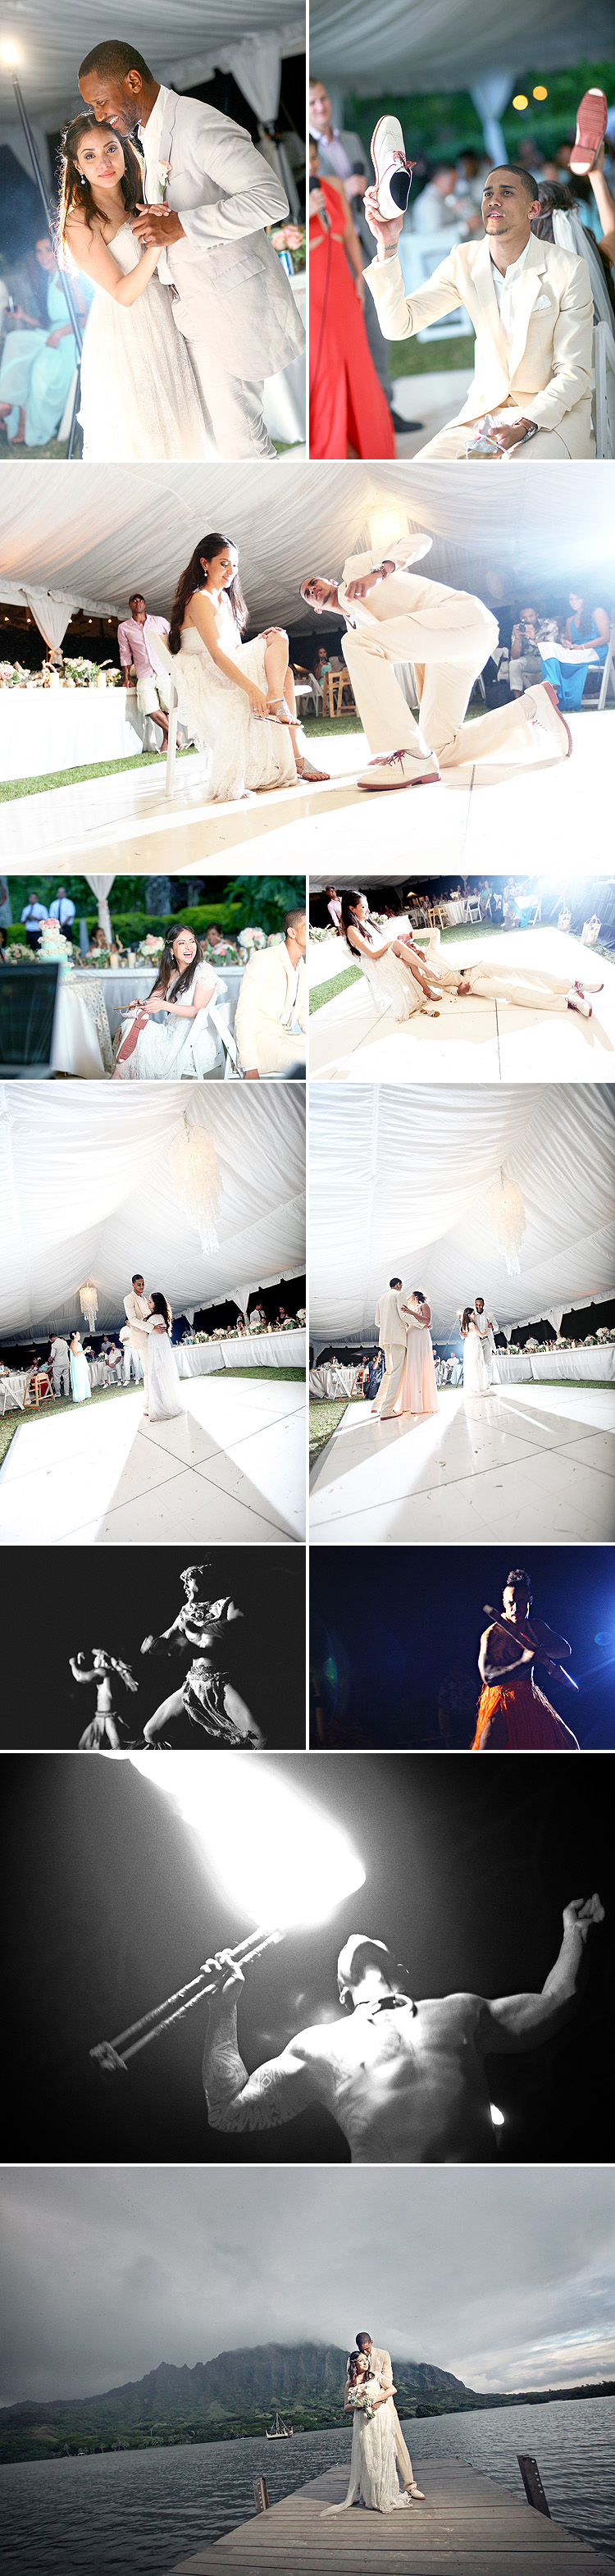 Hawaii Wedding Photography, Photographer Frank Amodo